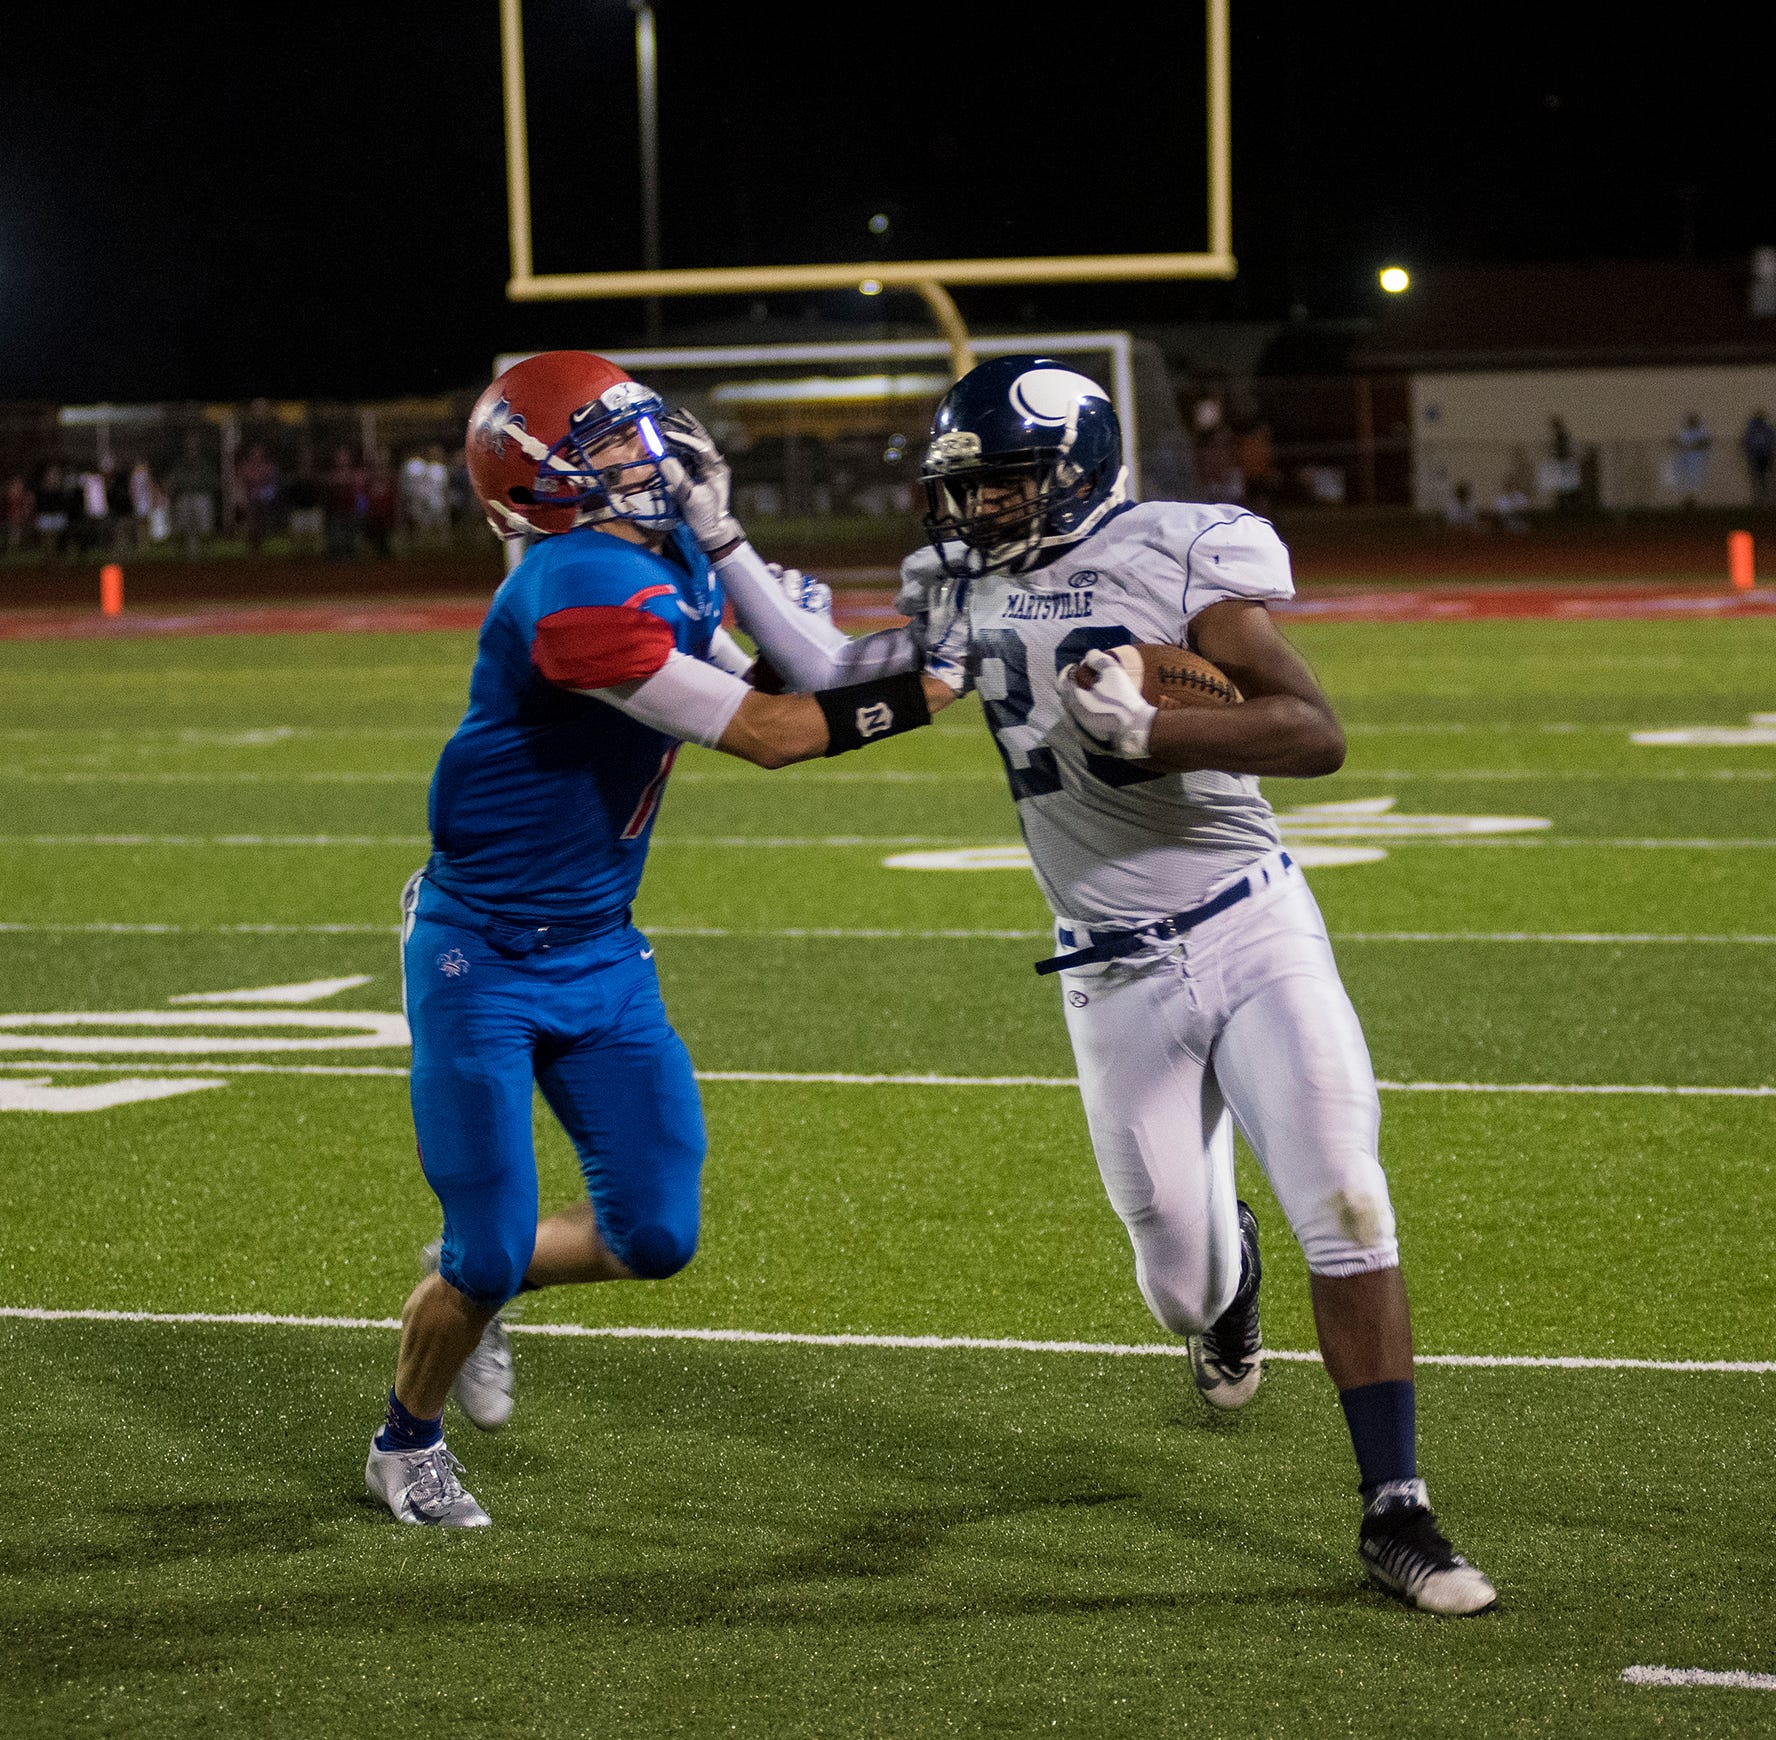 Week 5 Football Preview: Several local teams hoping to rebound